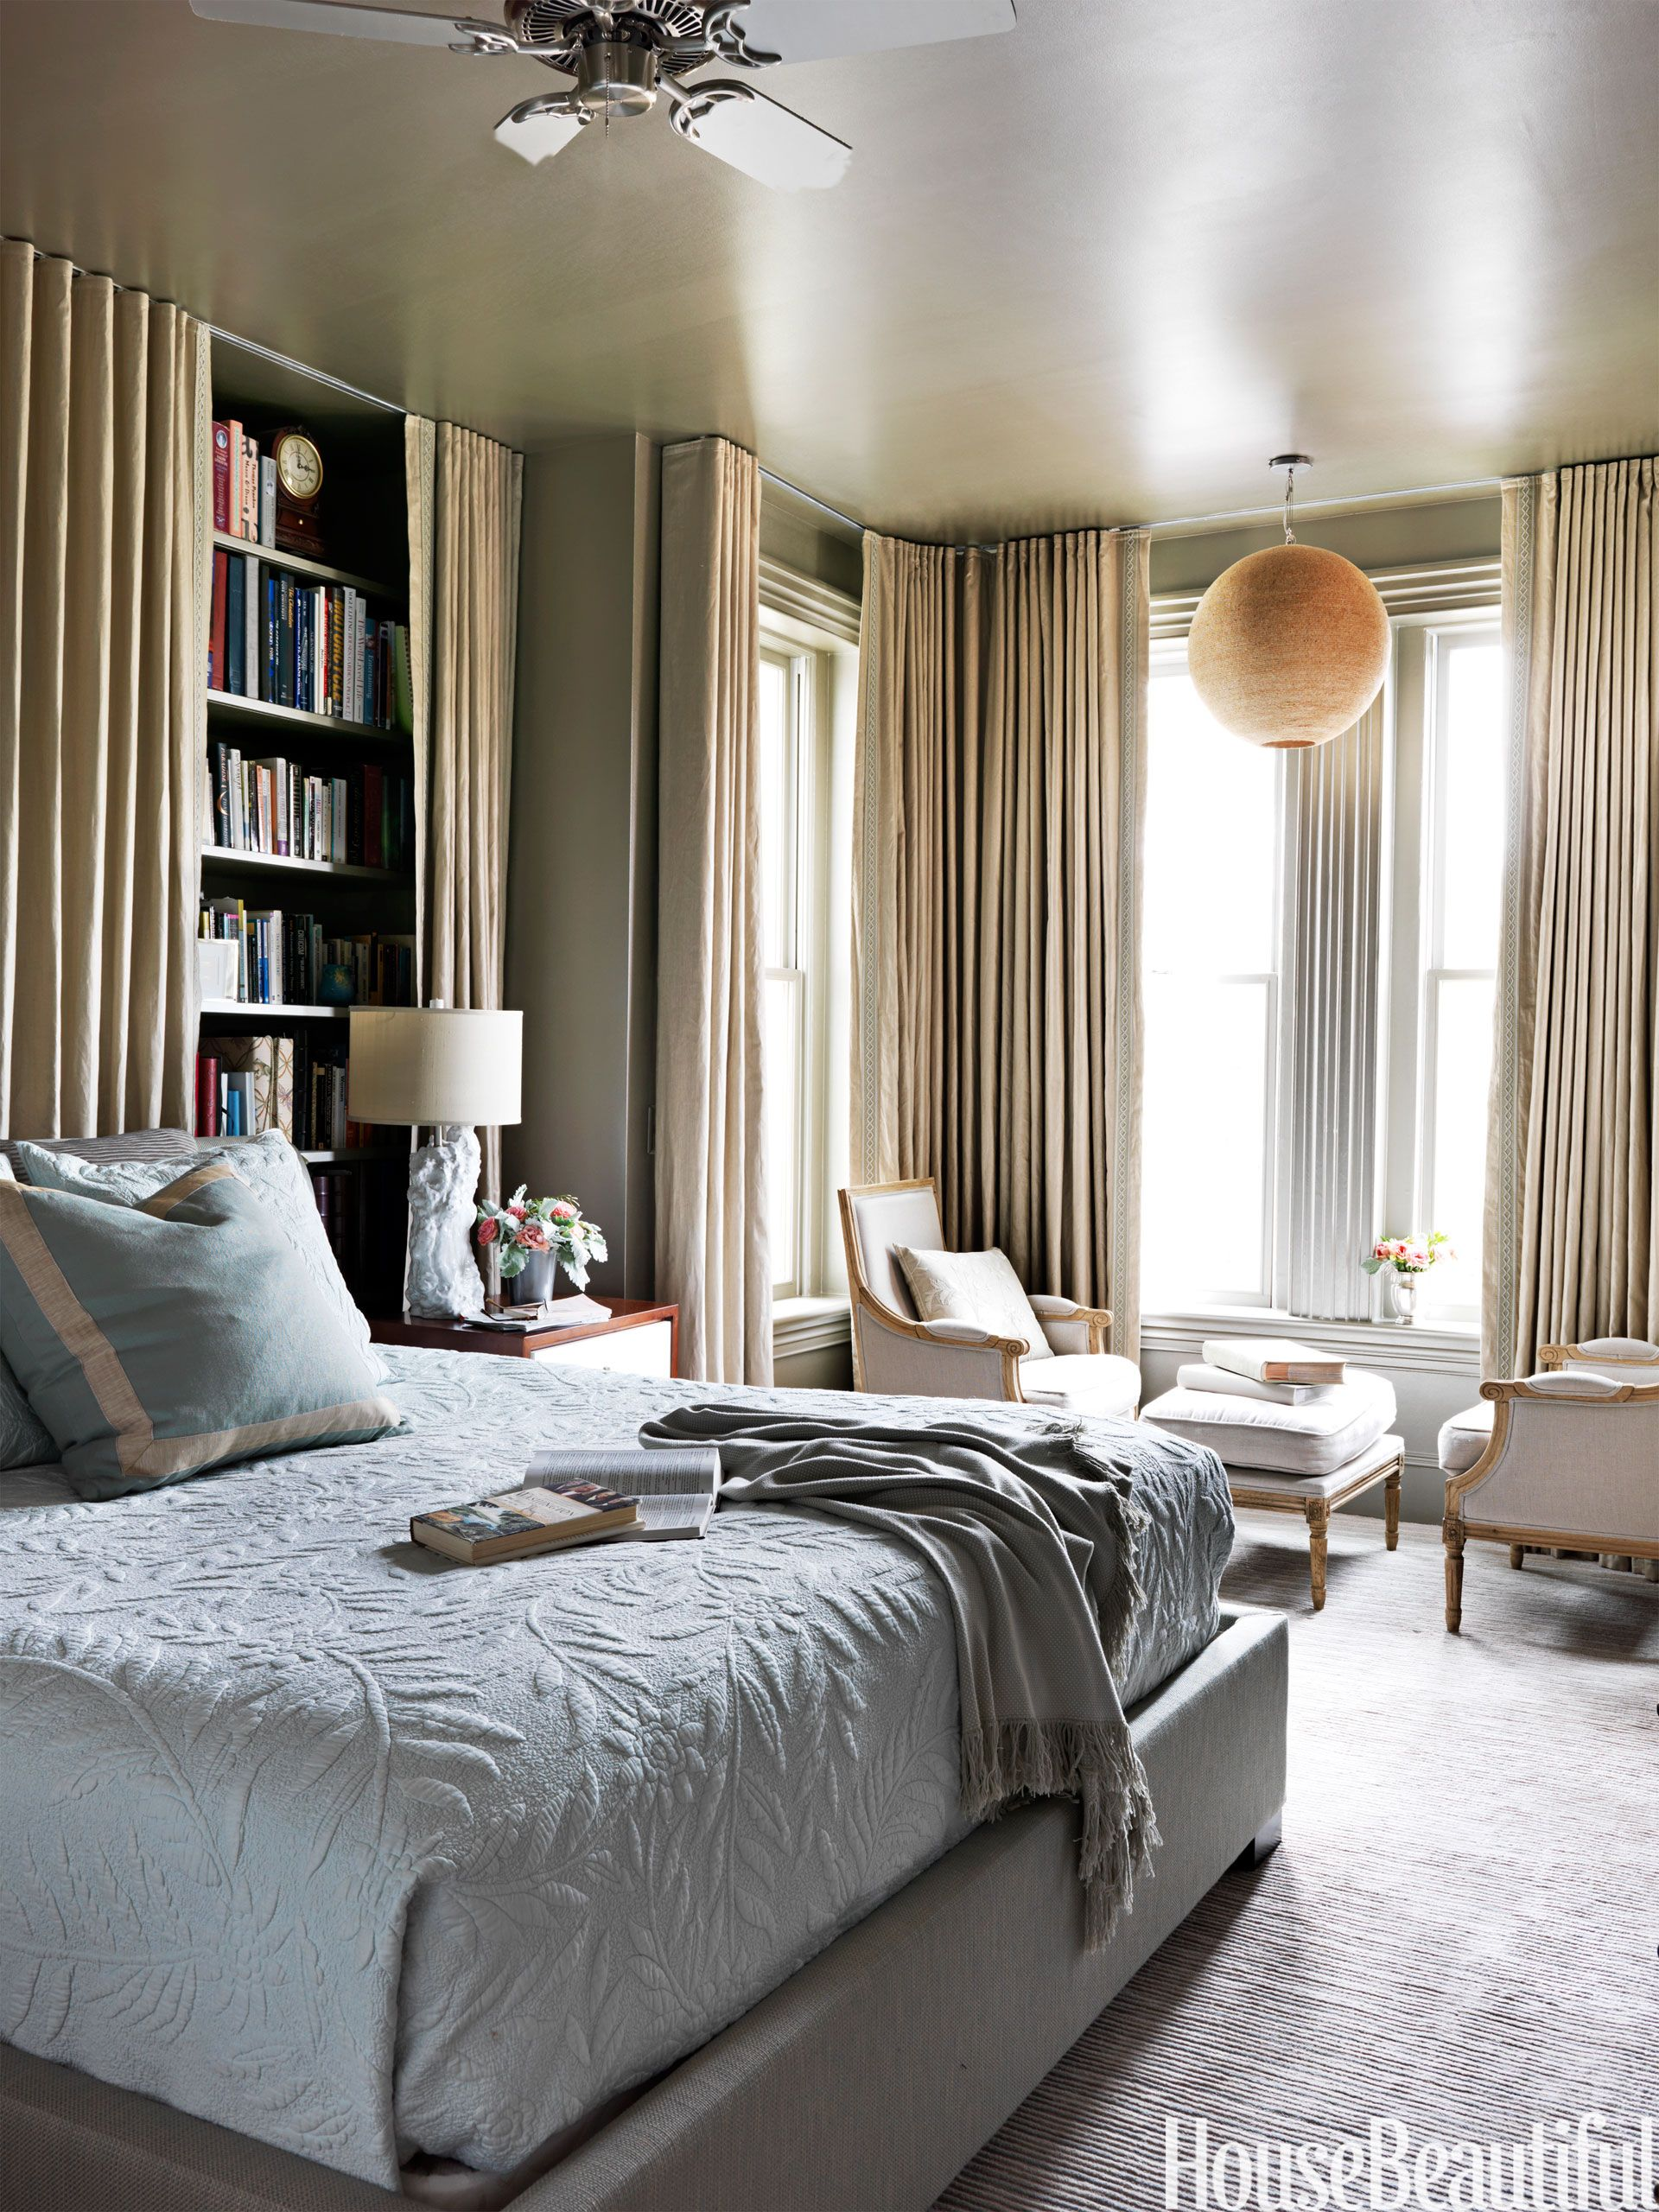 this at formas bed con drapes habitaci series way same as is de n the above mature dorm la literally s so hang classy yet navide decorar tu perfect sarah over lights princess luces and pin love time